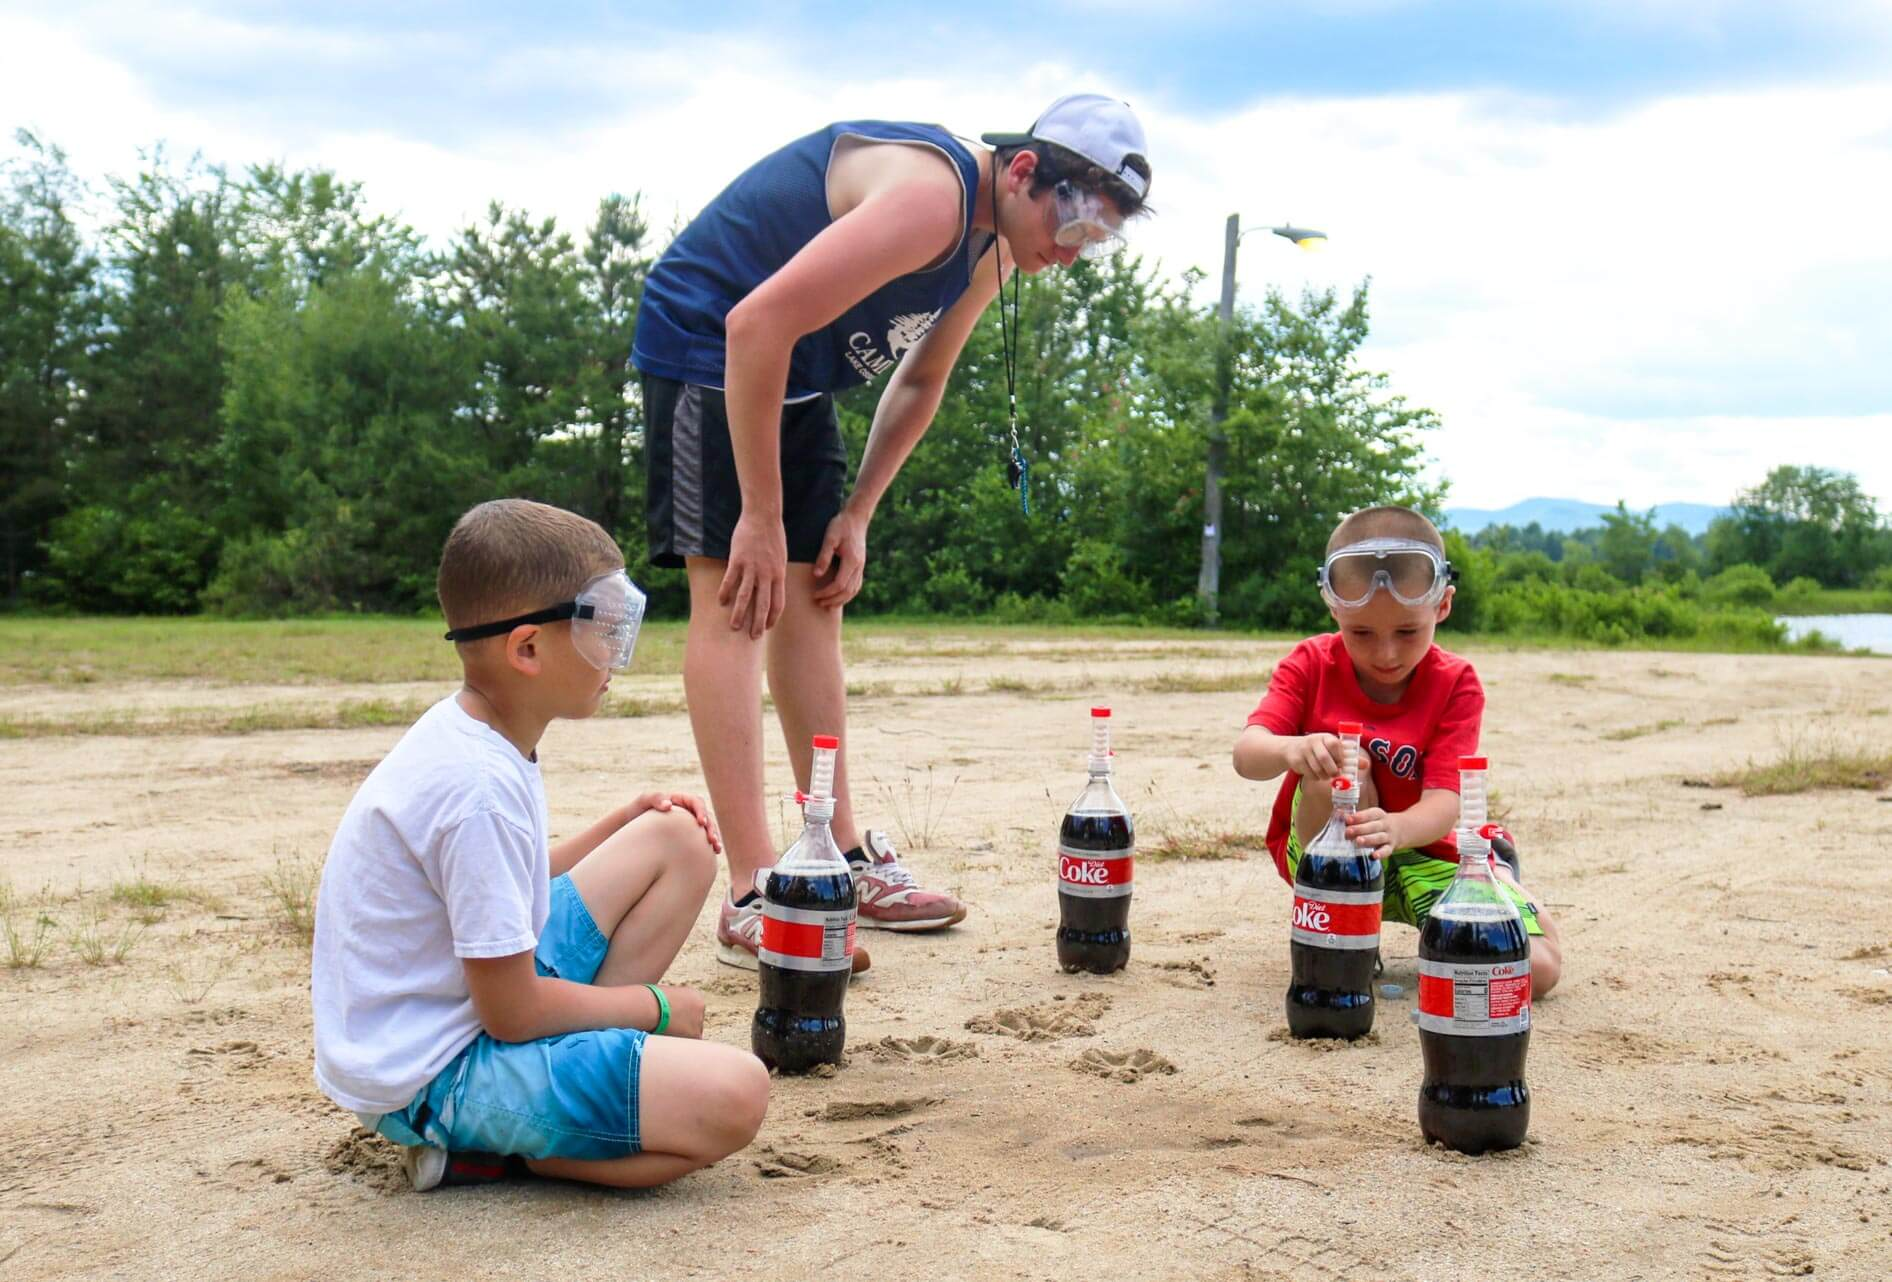 Counselor oversees young campers with Coke and Mentos